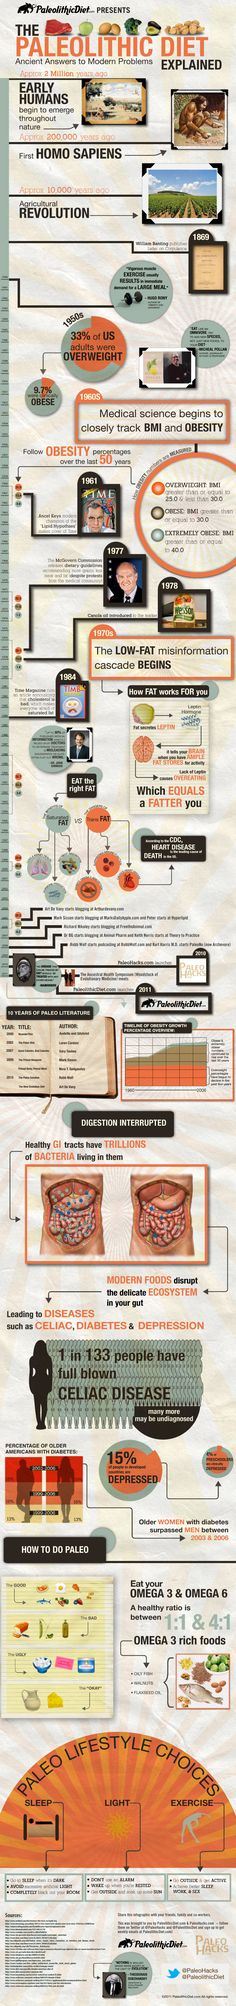 The Paleo Diet – Eliminating Food That Conflicts With Your Body (Infographic)